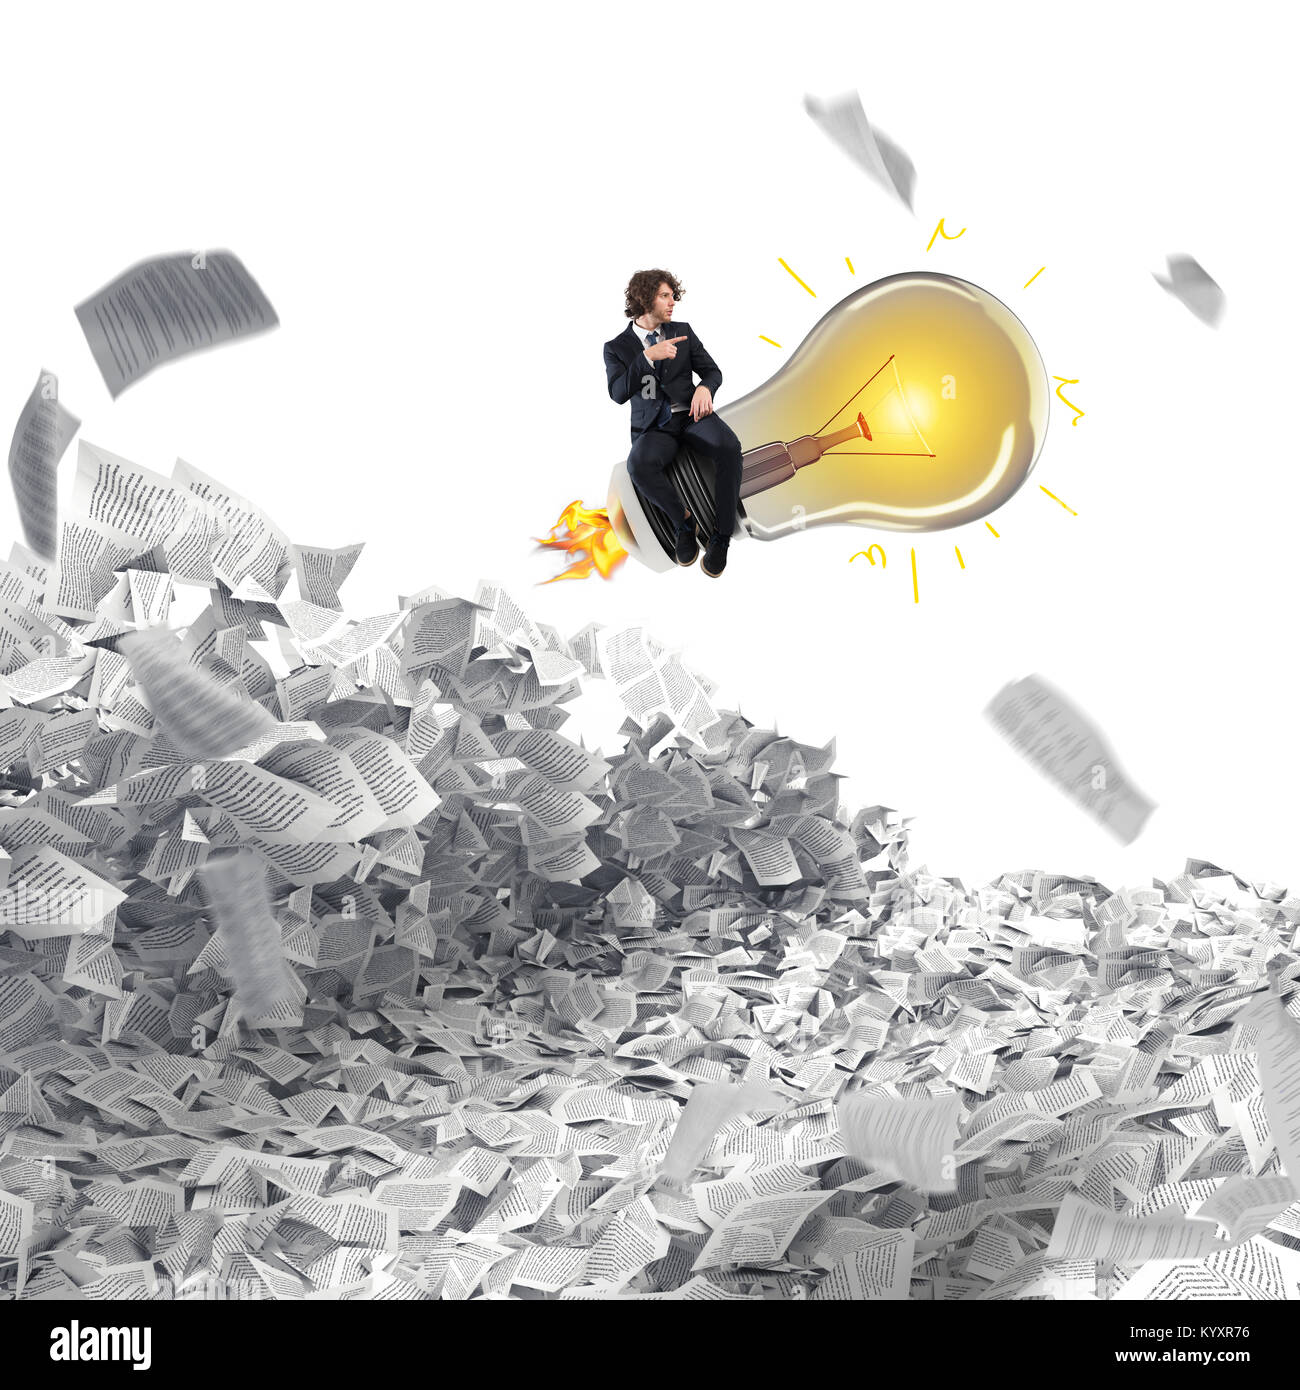 Great business idea. 3D Rendering - Stock Image